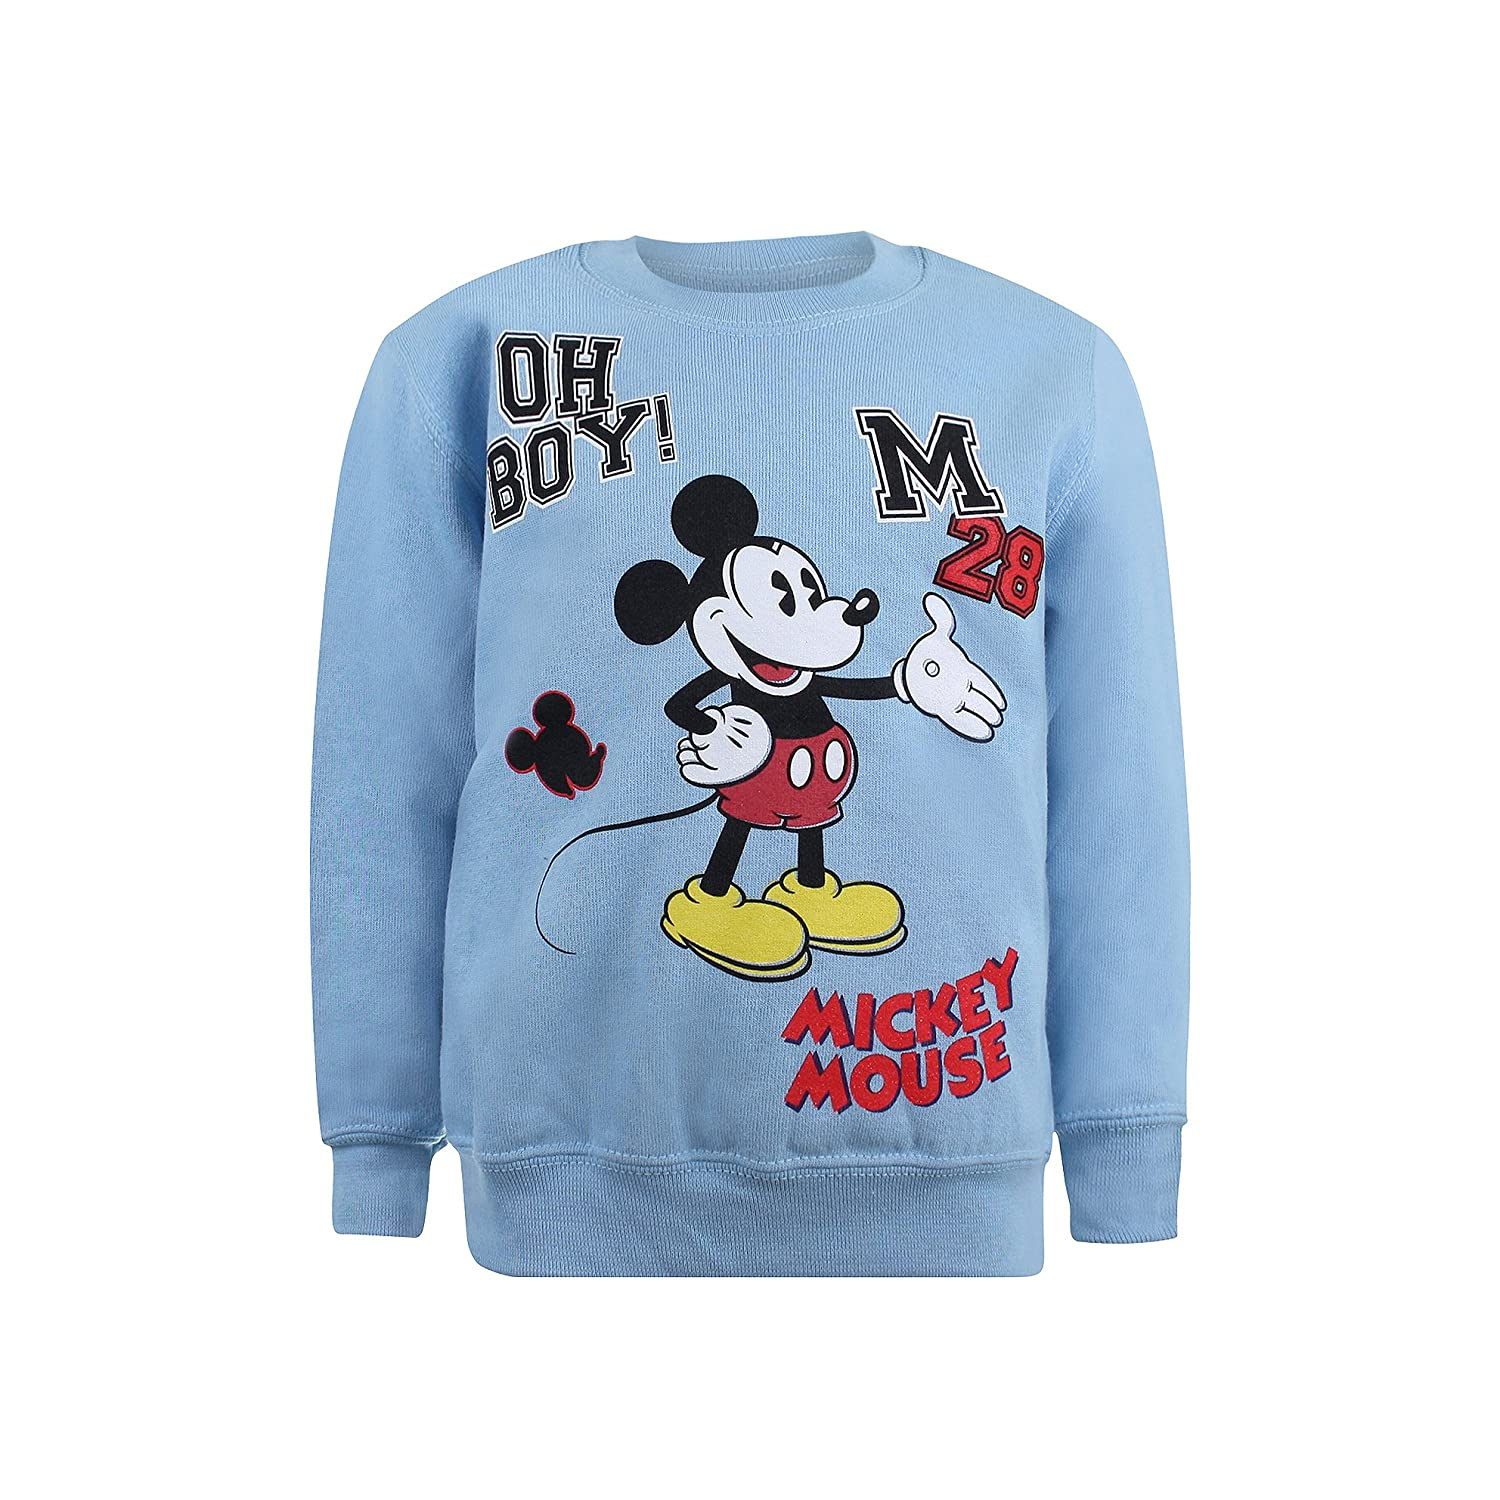 Disney Boy's Mickey Patches T-Shirt